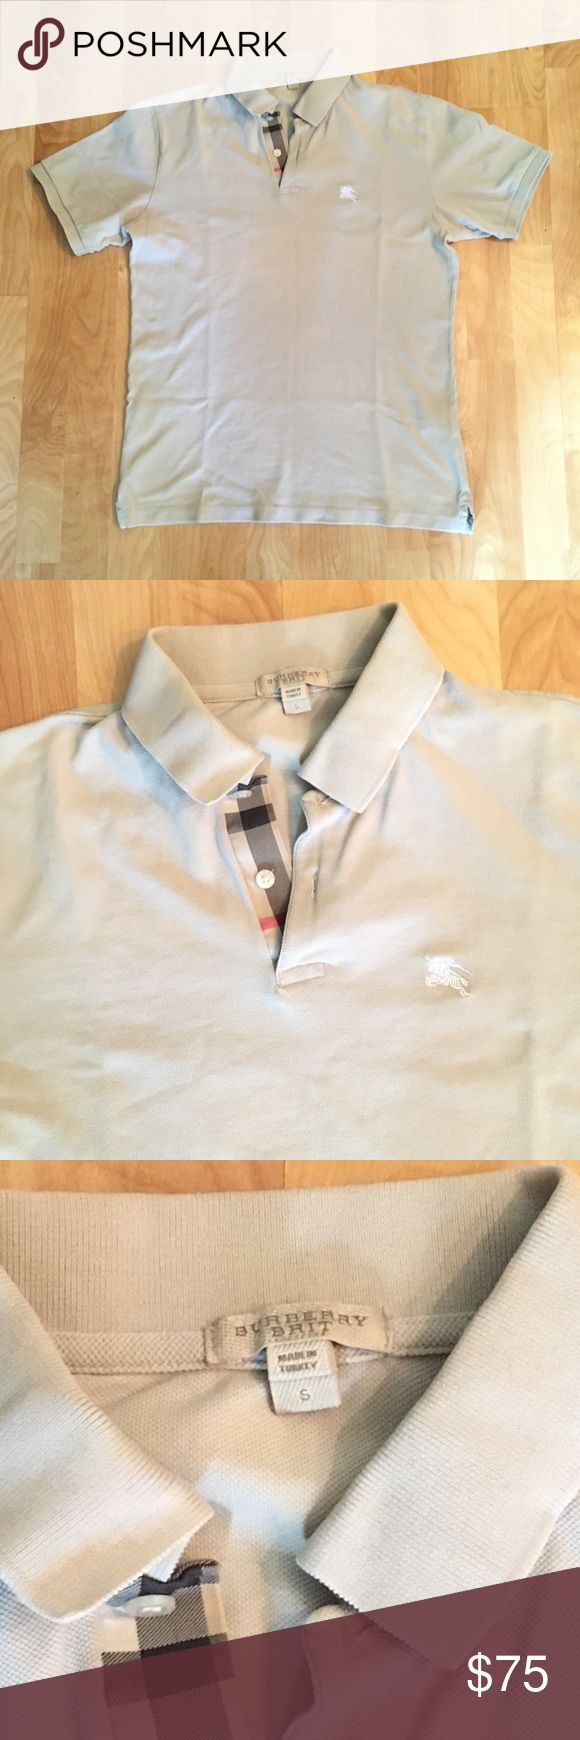 BURBERRY polo shirt Classic beige authentic Burberry Brit polo shirt with Burberry plaid accent on placket. Very good pre-owned condition. Burberry Shirts Polos